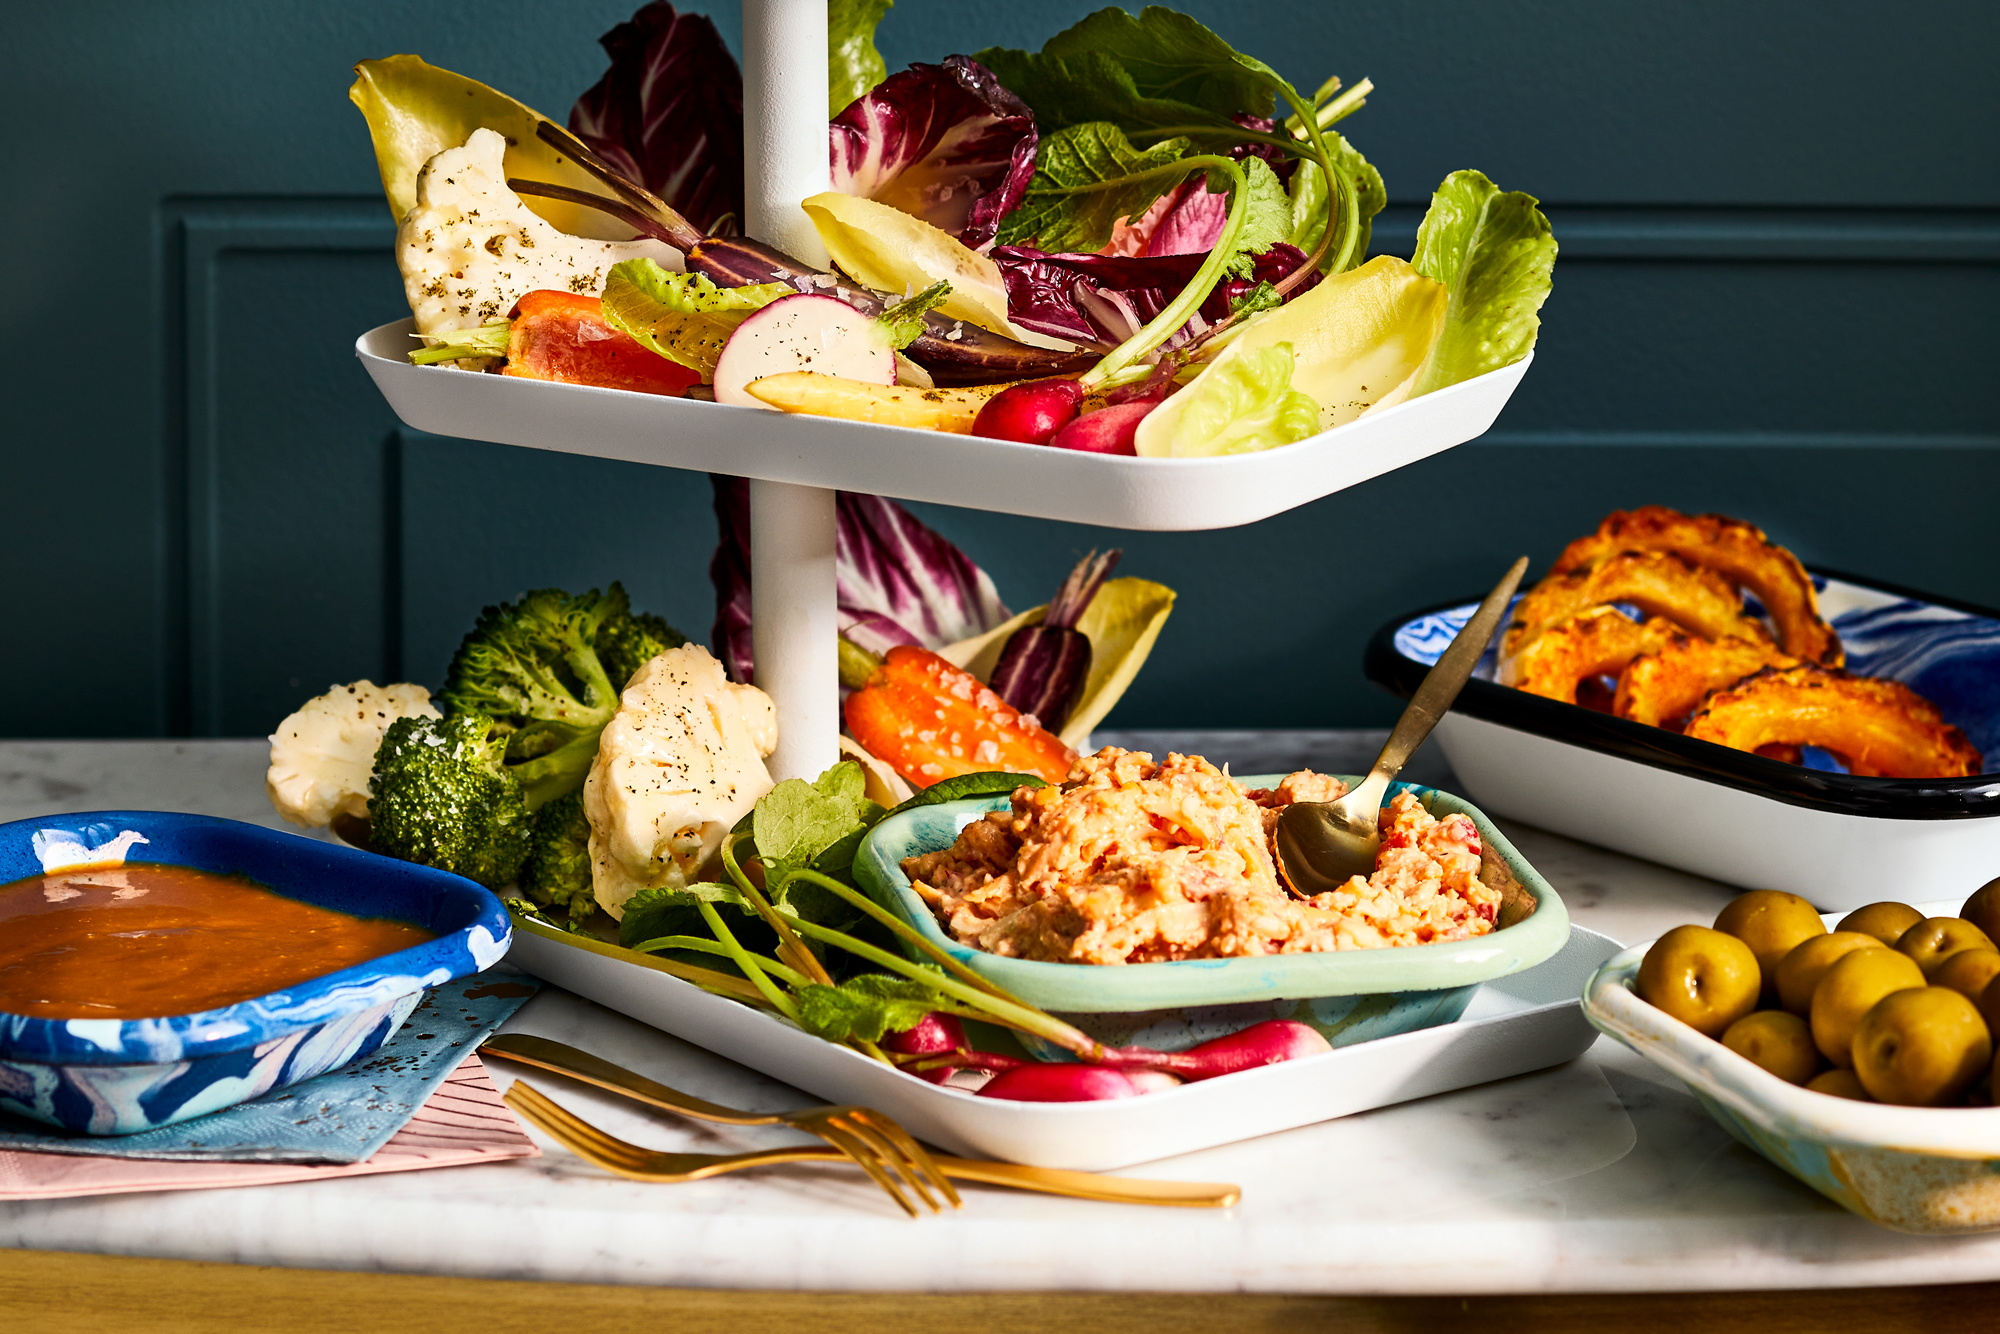 Fall Crudites Platter with Pimiento Cheese and Shiro Miso Dip